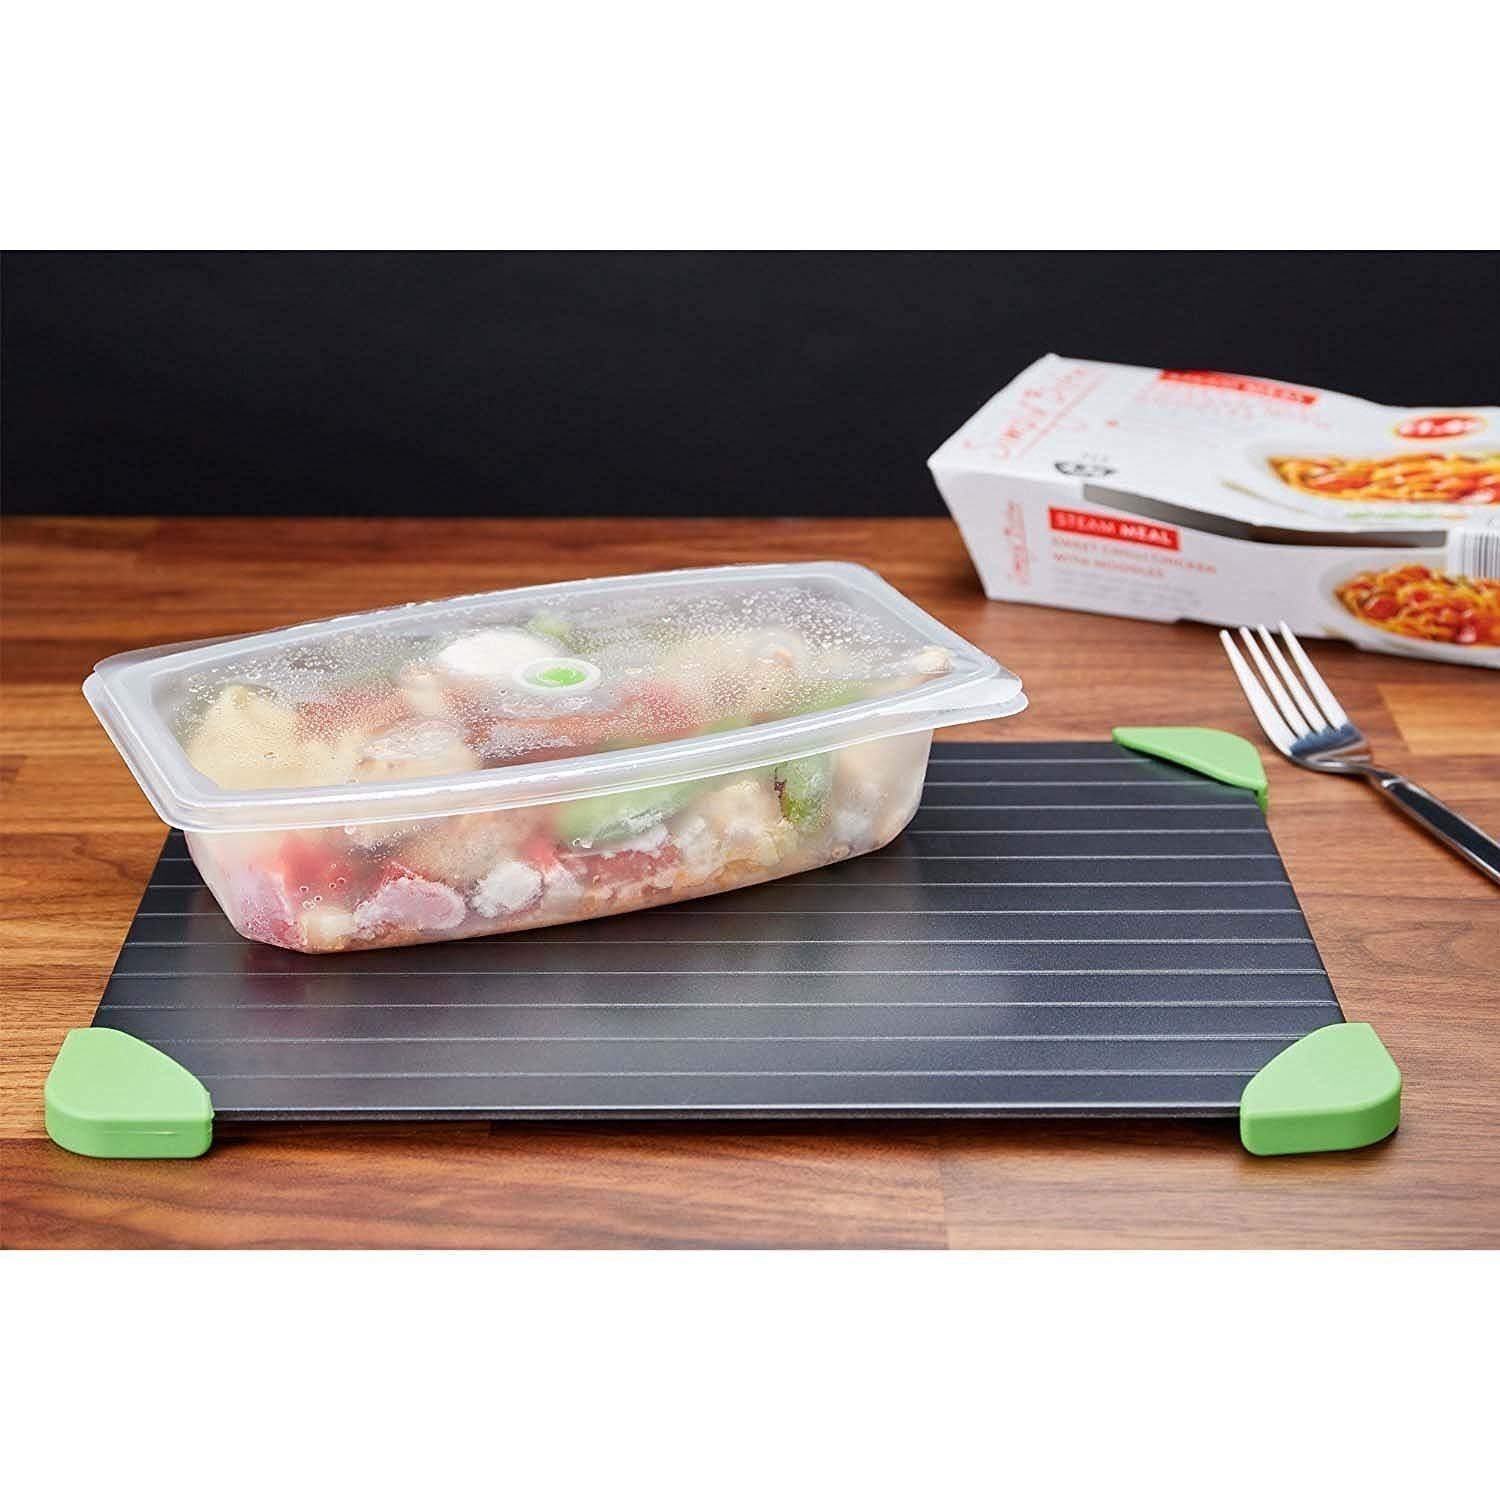 Cook@Home Fast Defrosting Tray - The Safest Way to Defrost Meat or Frozen Food Quickly Without Electricity, Microwave, Hot Water or Any Other Tools (Green)